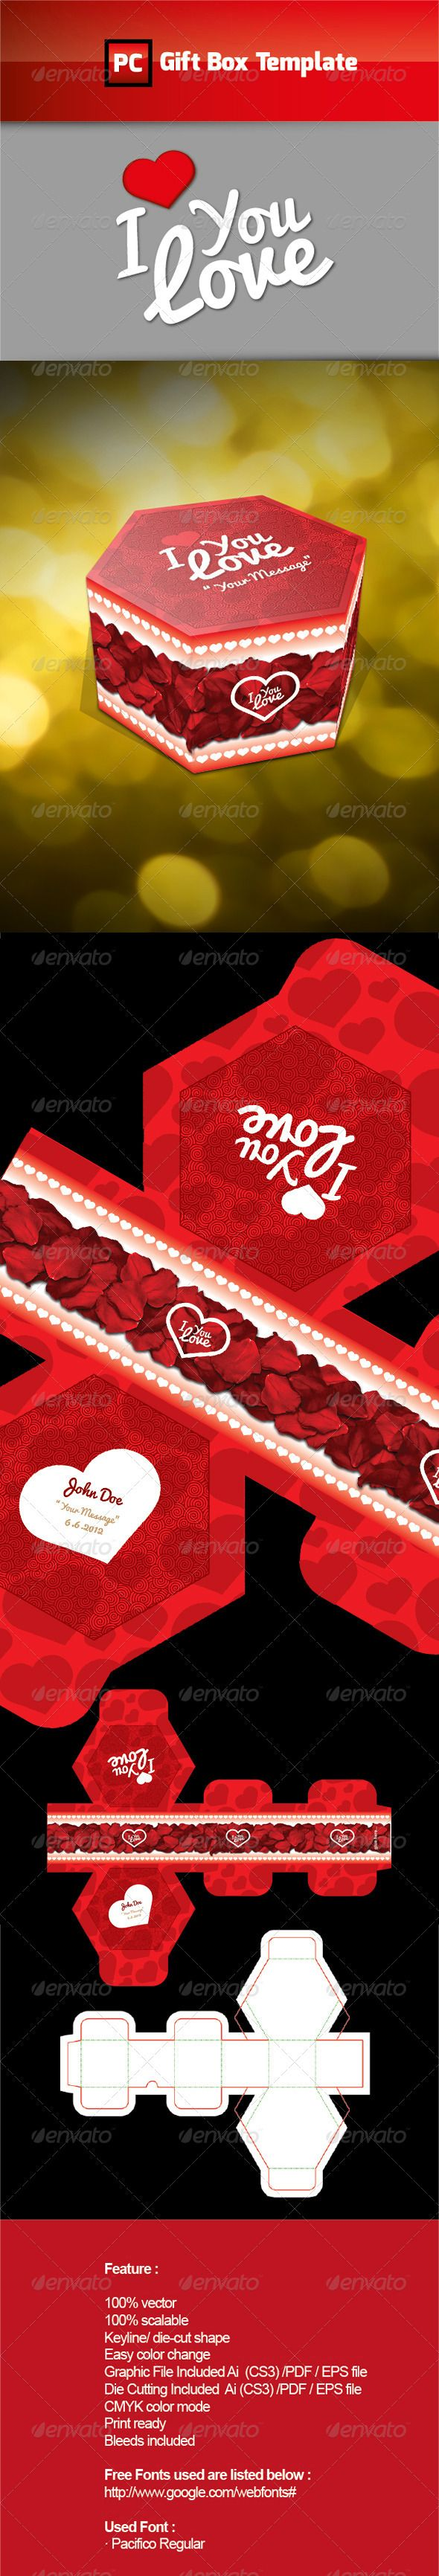 Cd box template download free vector art stock graphics amp images - I Love Gift Box Template